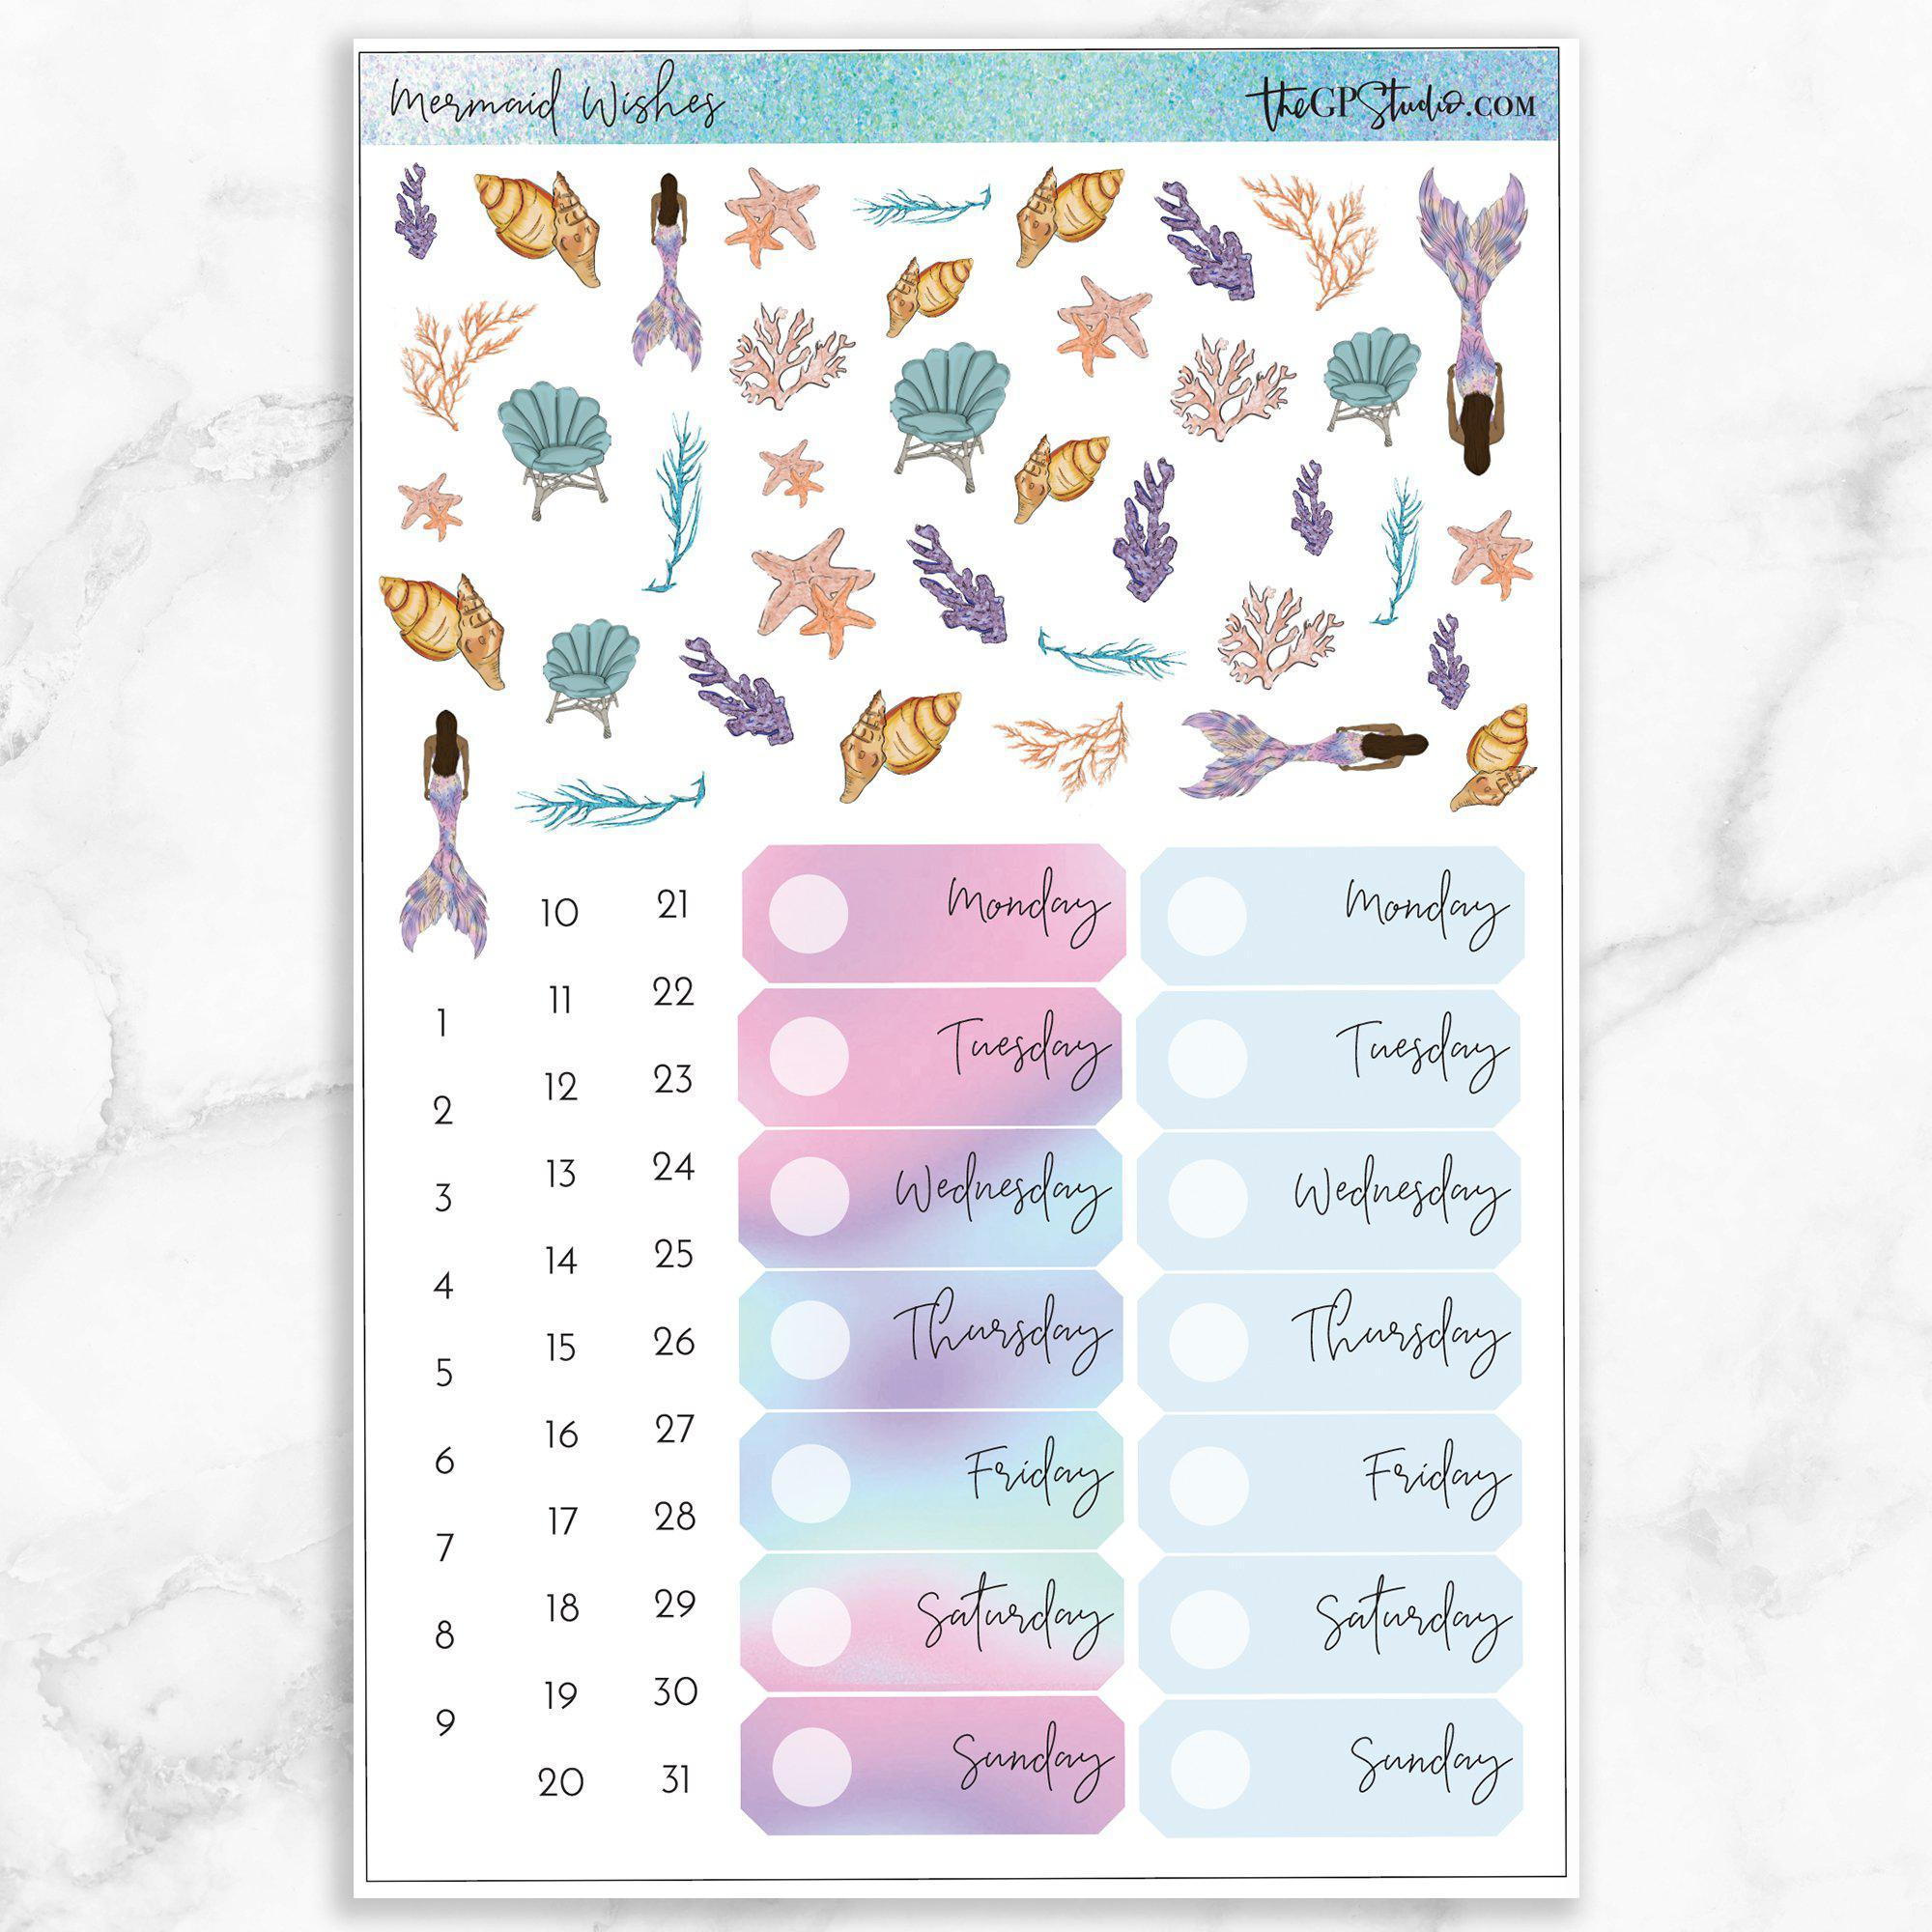 MERMAID WISHES Deco & Date Cover Stickers-The GP Studio